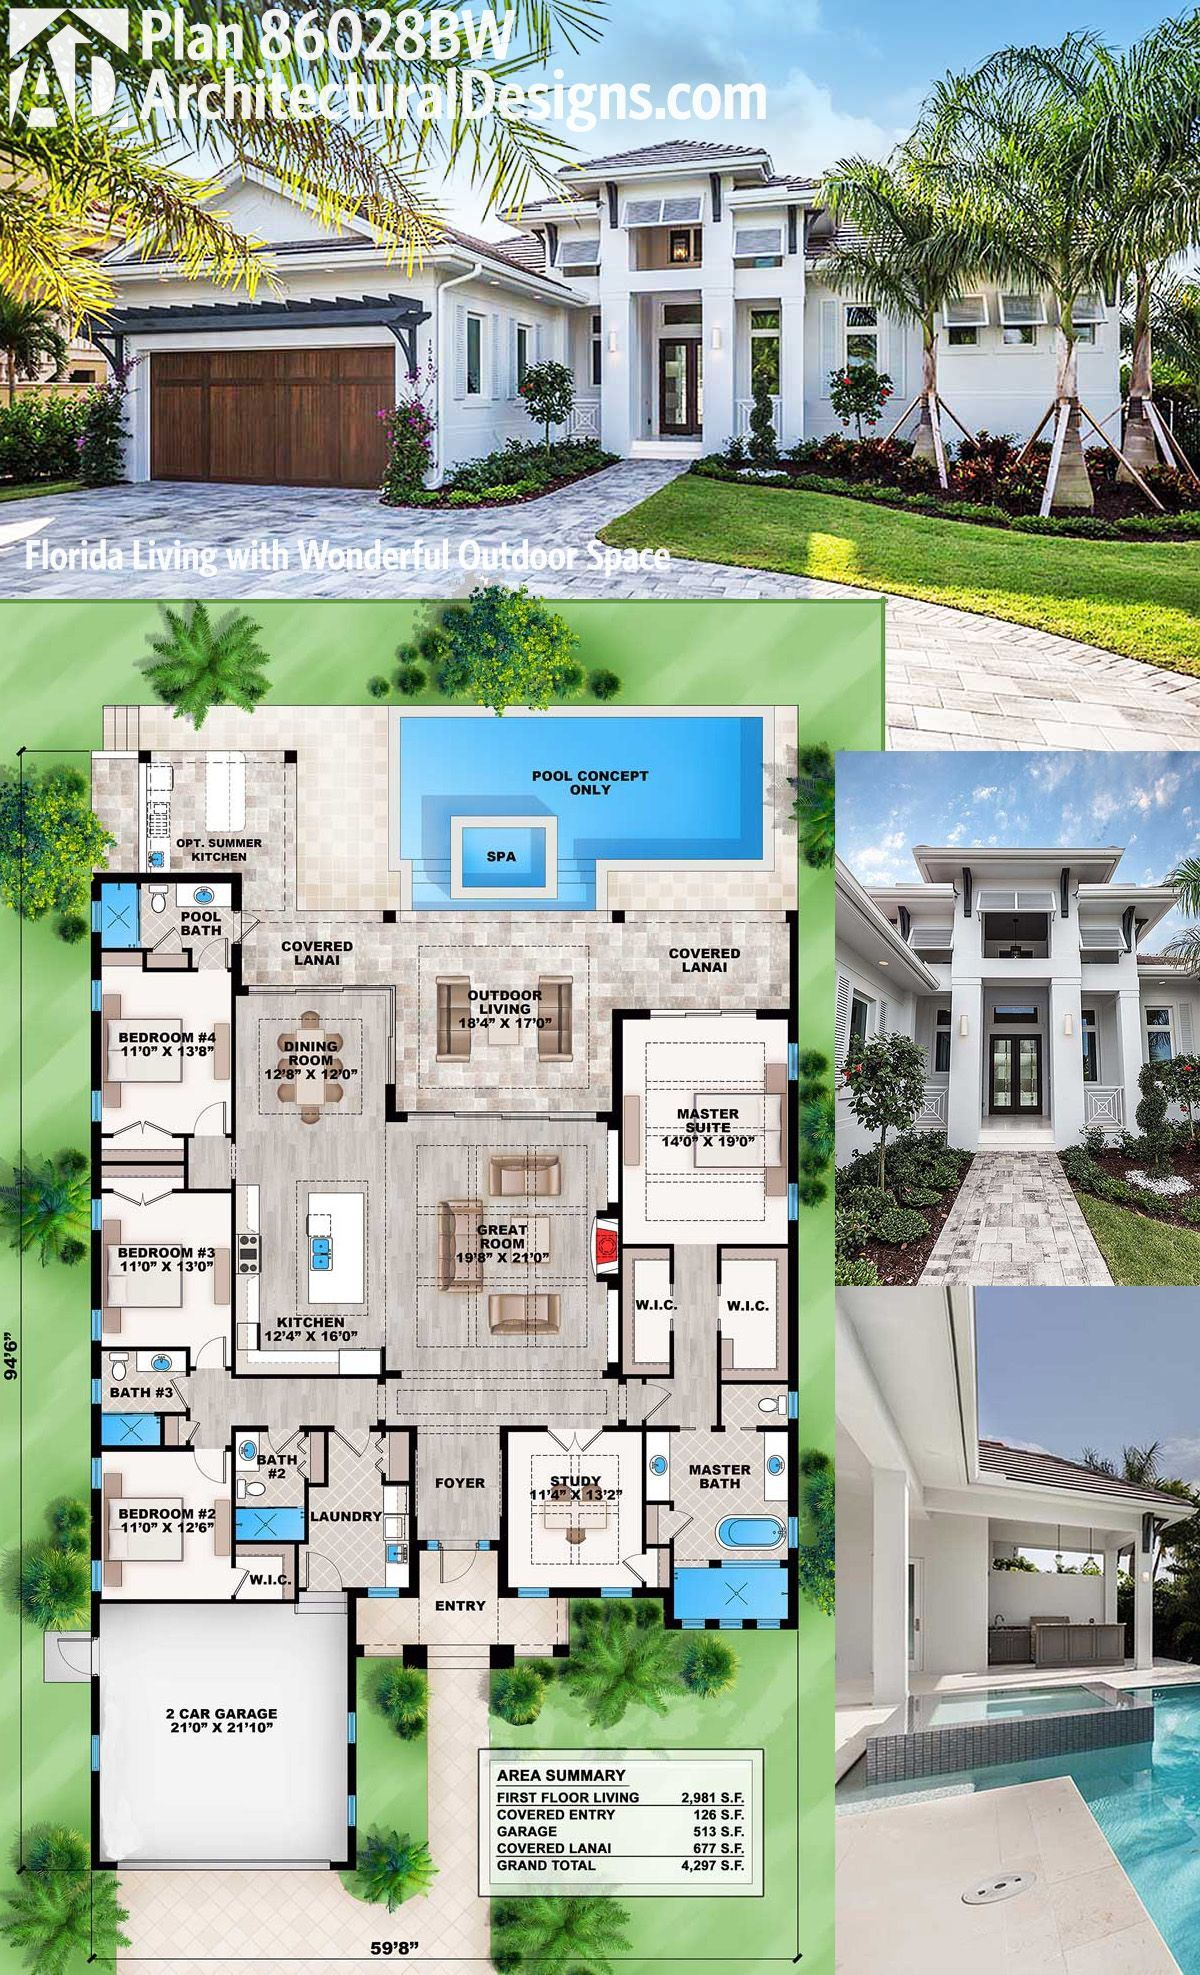 Architectural designs bed modern southern house plan bw looks